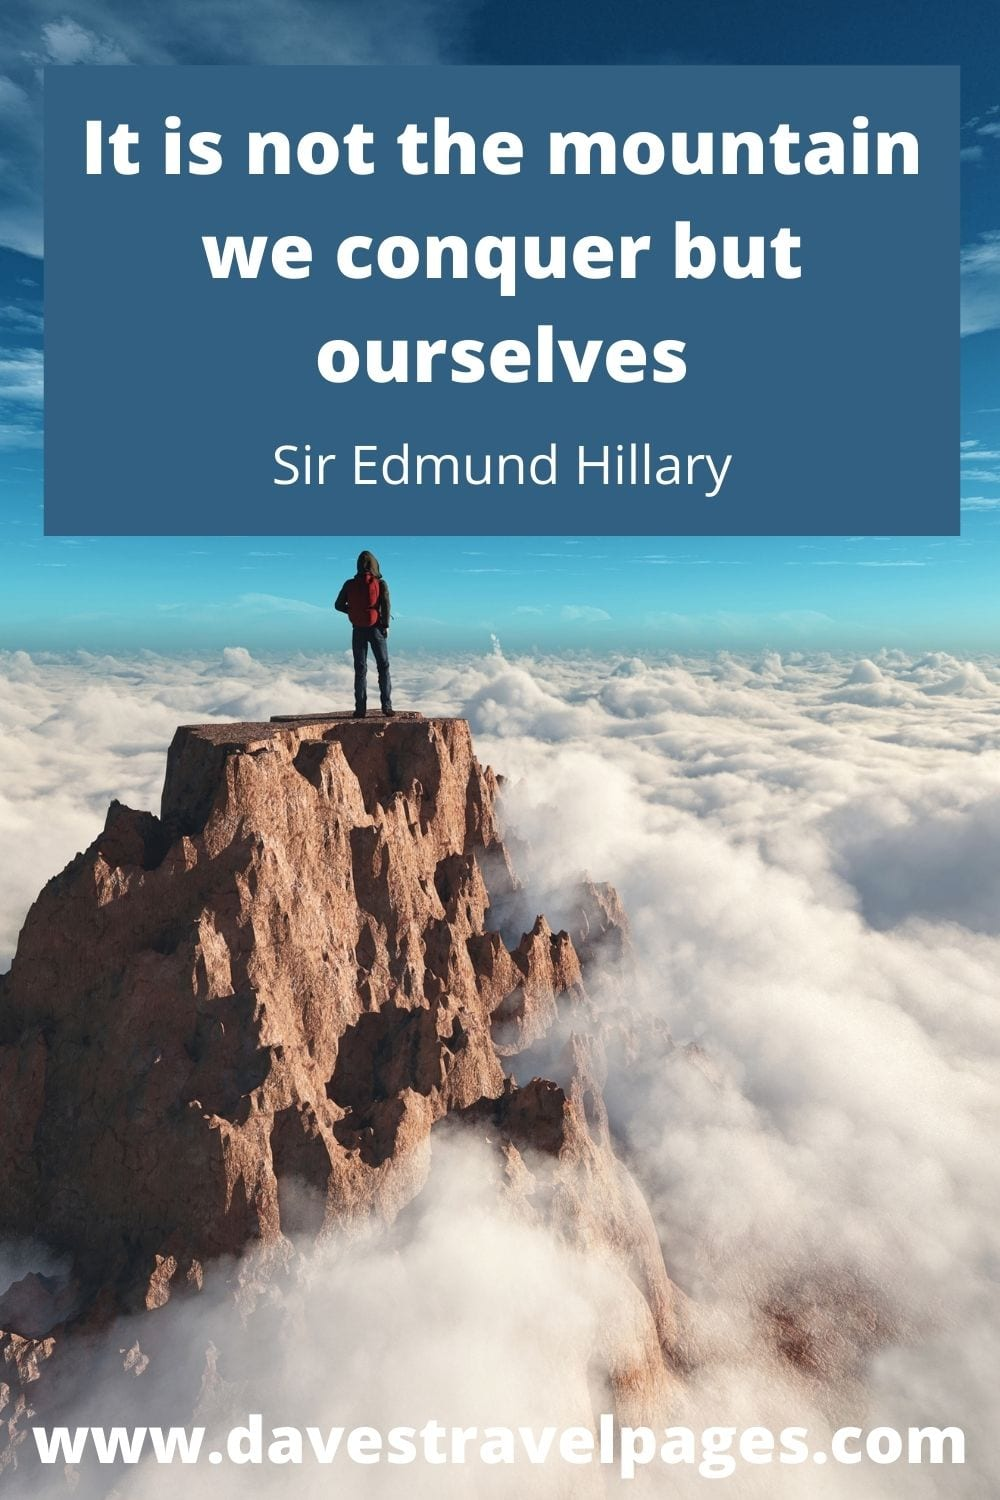 Famous Mountain Quotes - Sir Edmund Hillary